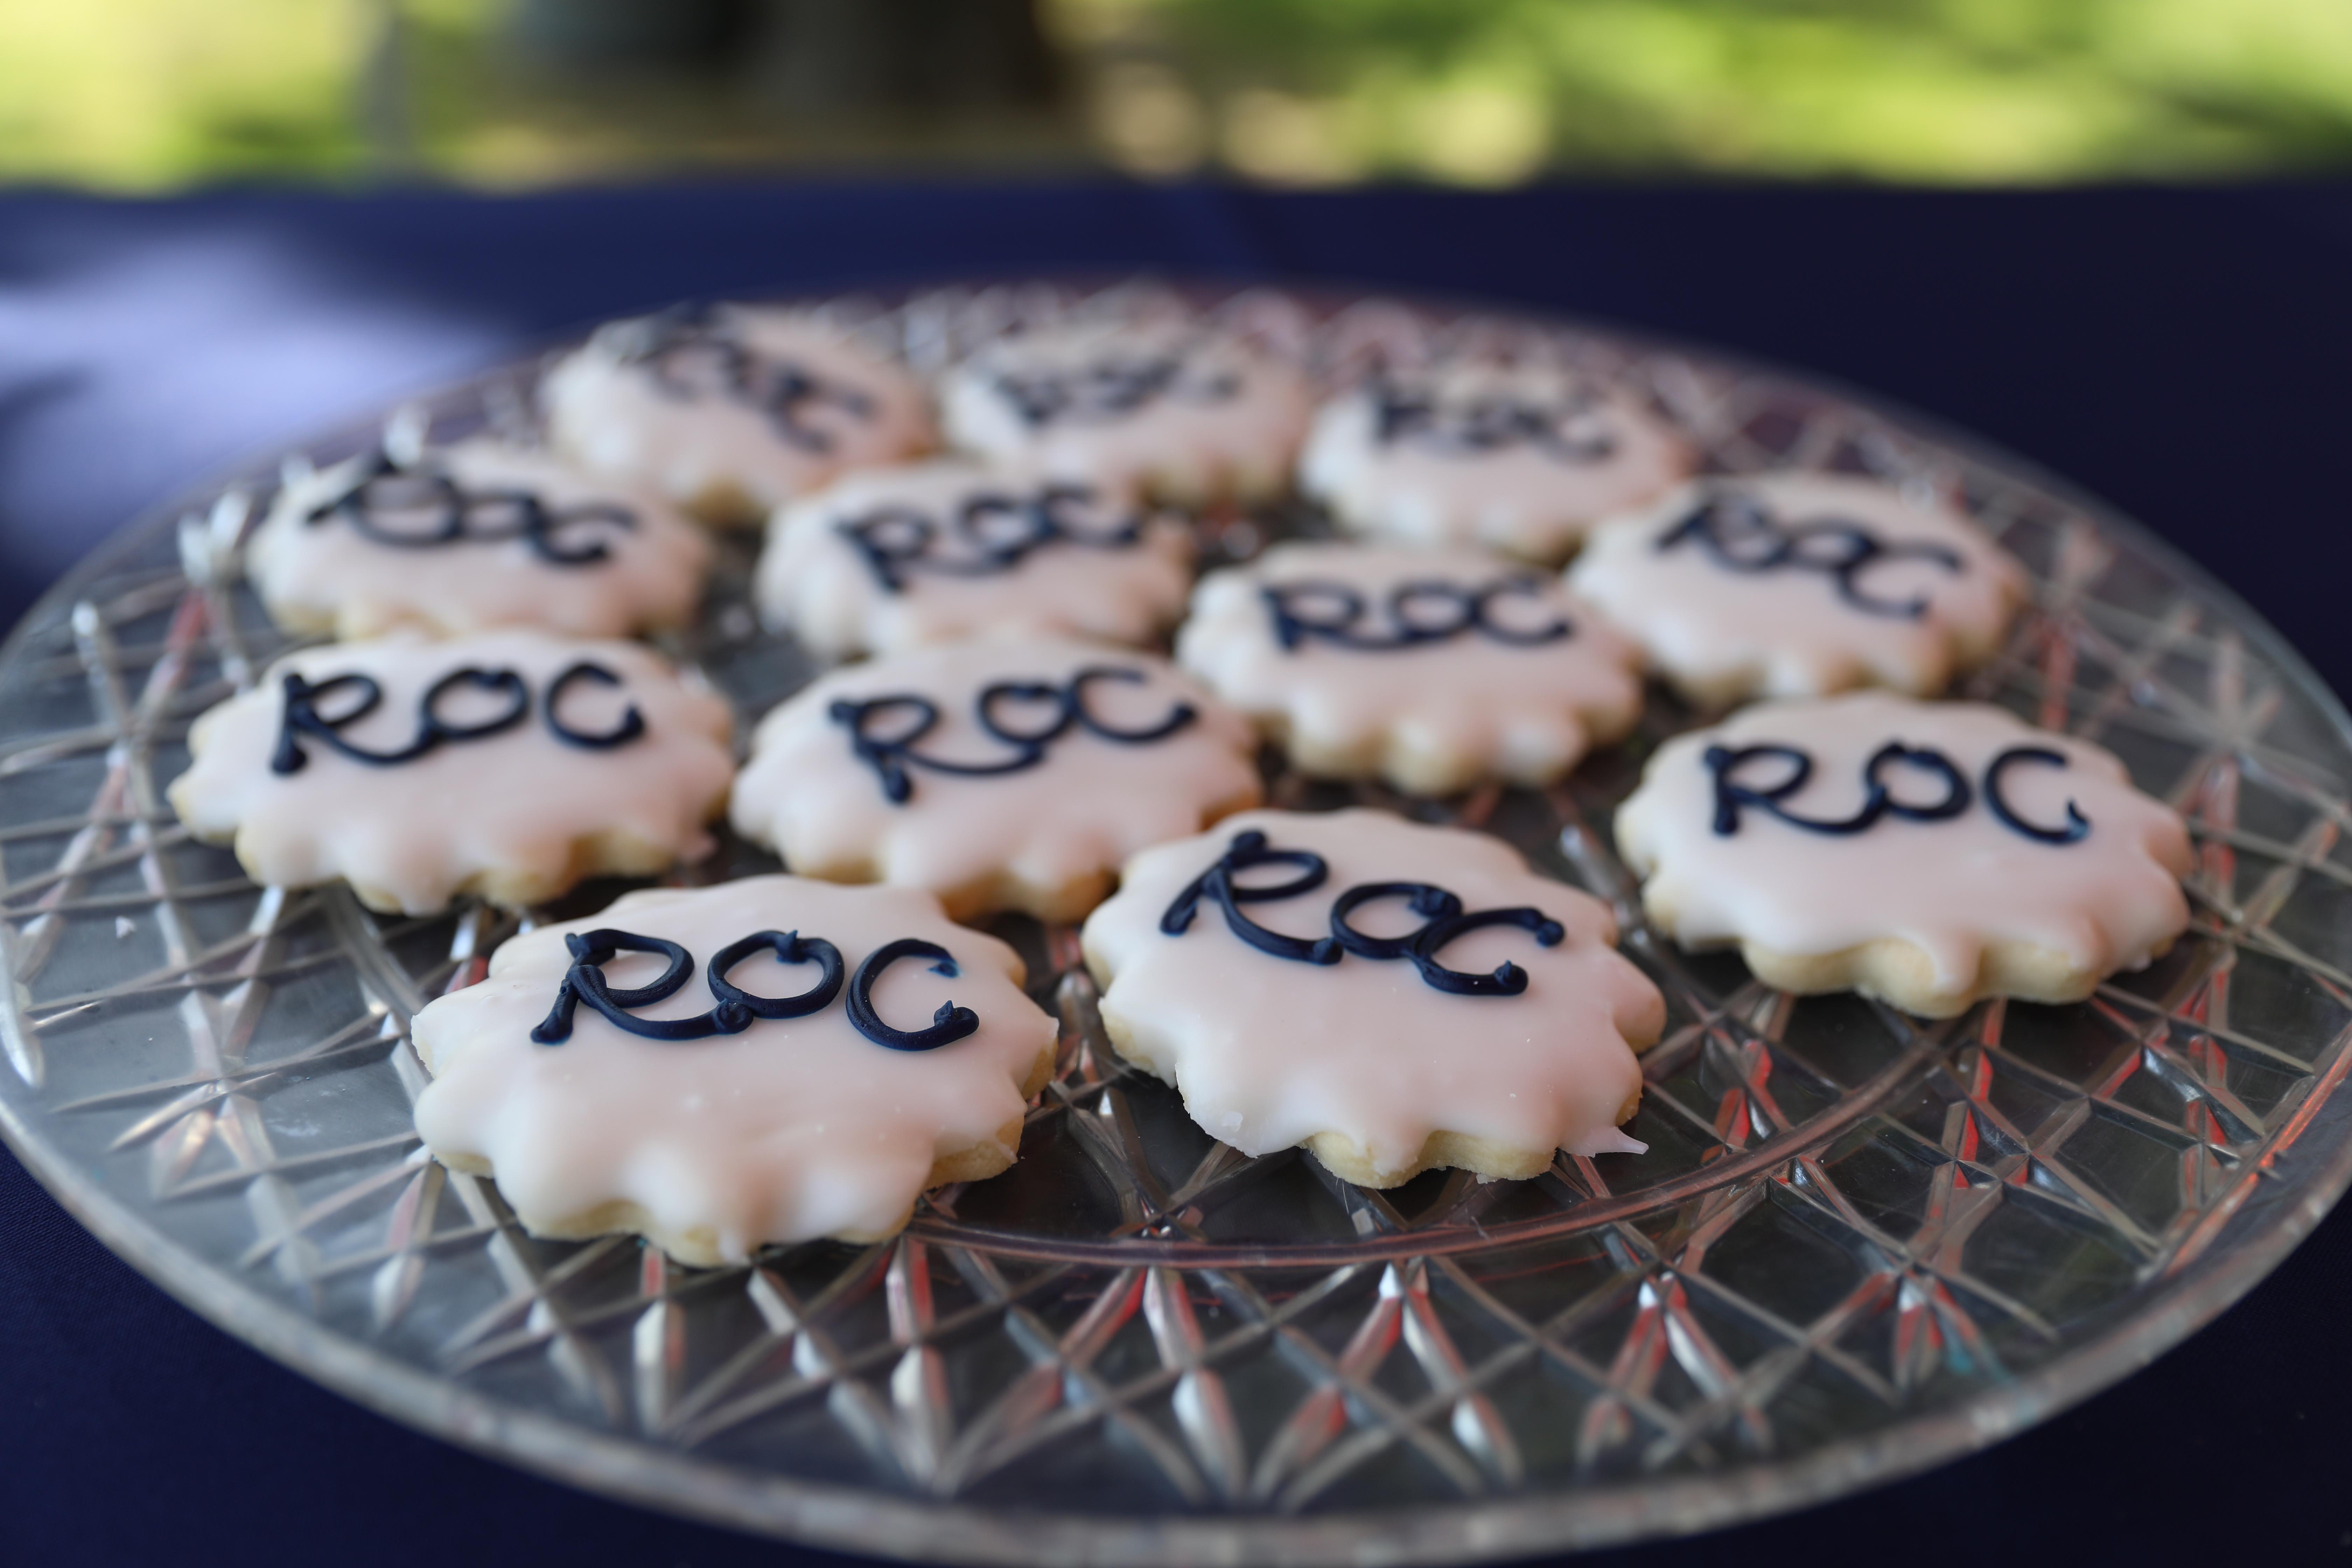 ROC Refreshments and cookies